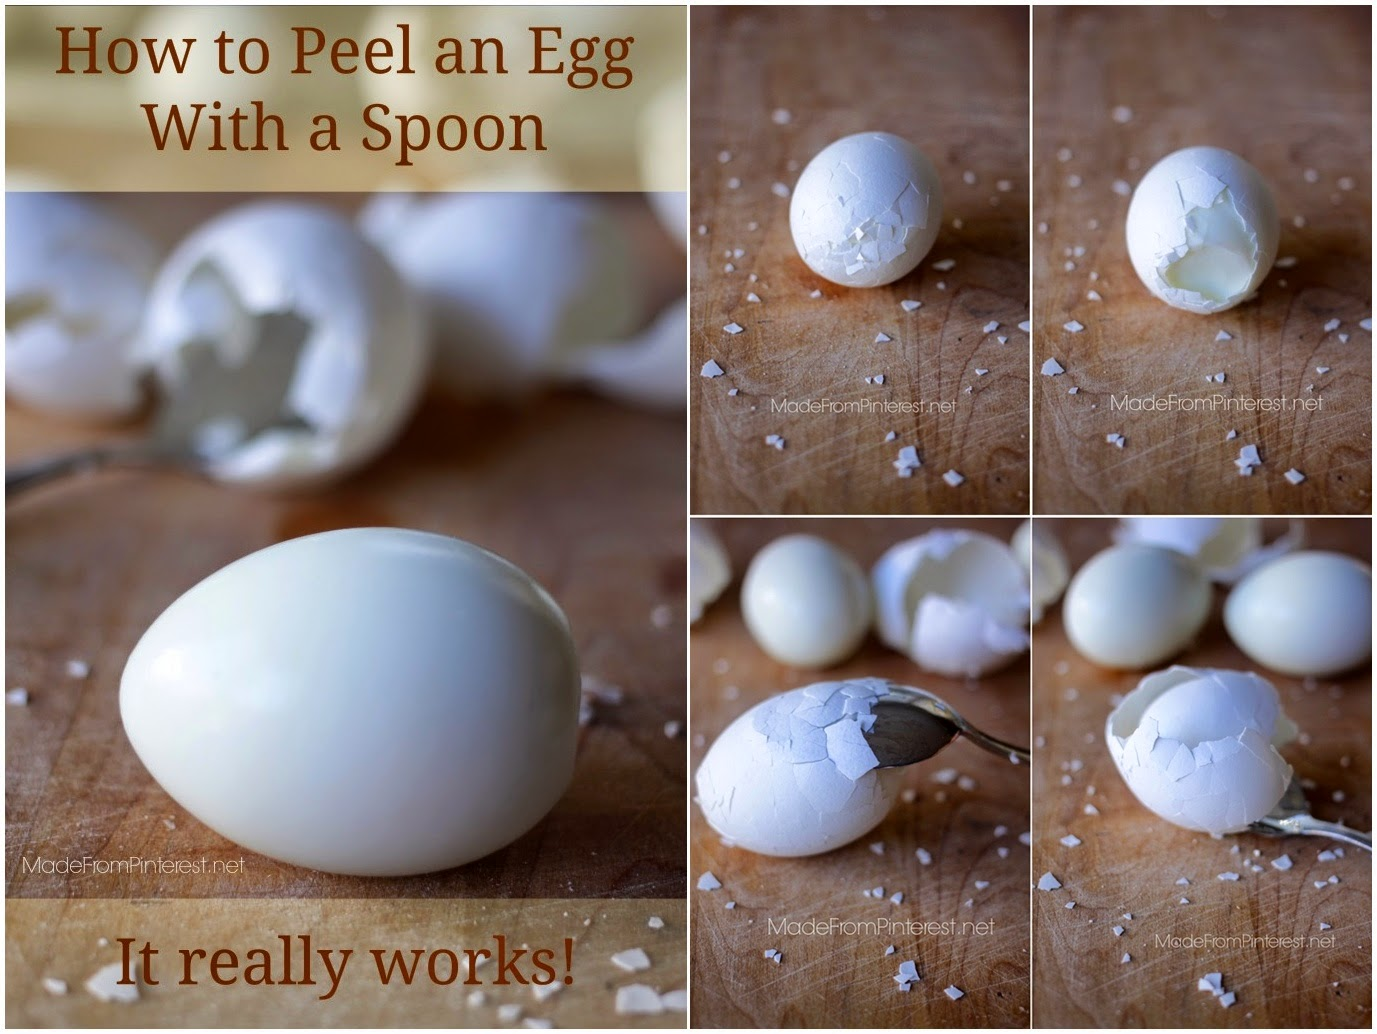 How To Peel an Egg With a Spoon